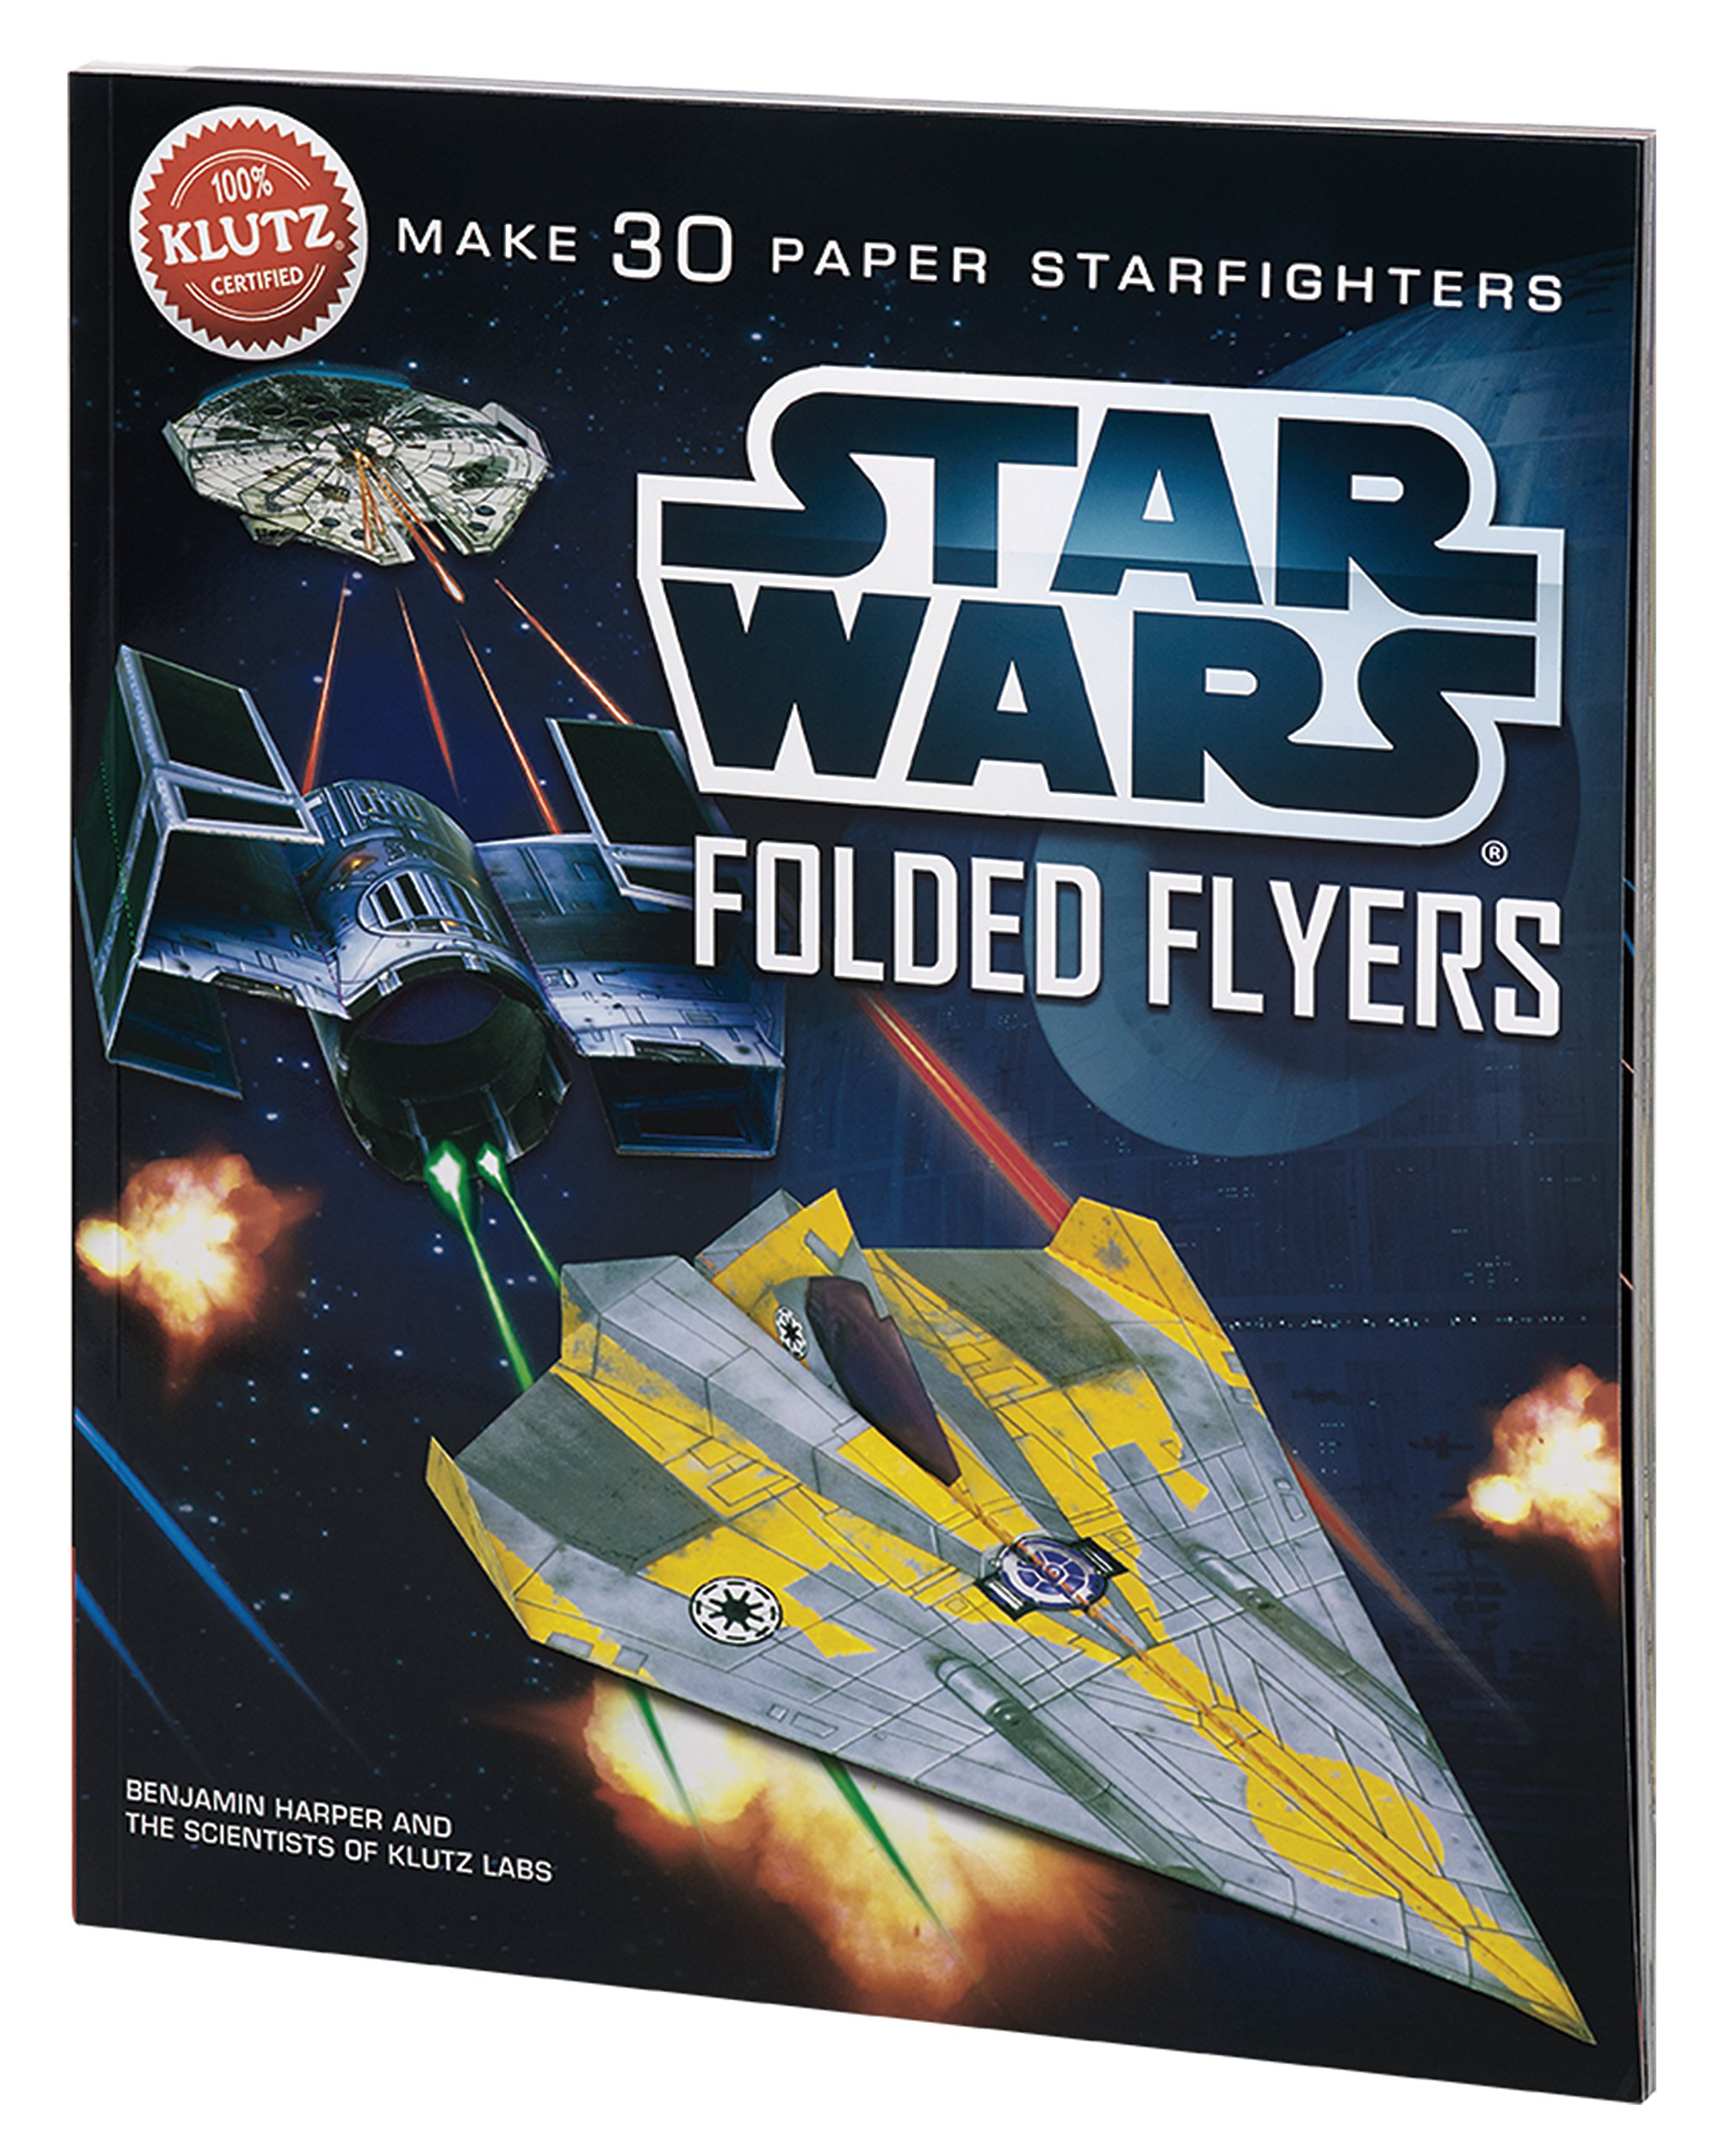 amazon star wars folded flyers klutz benjamin harper models